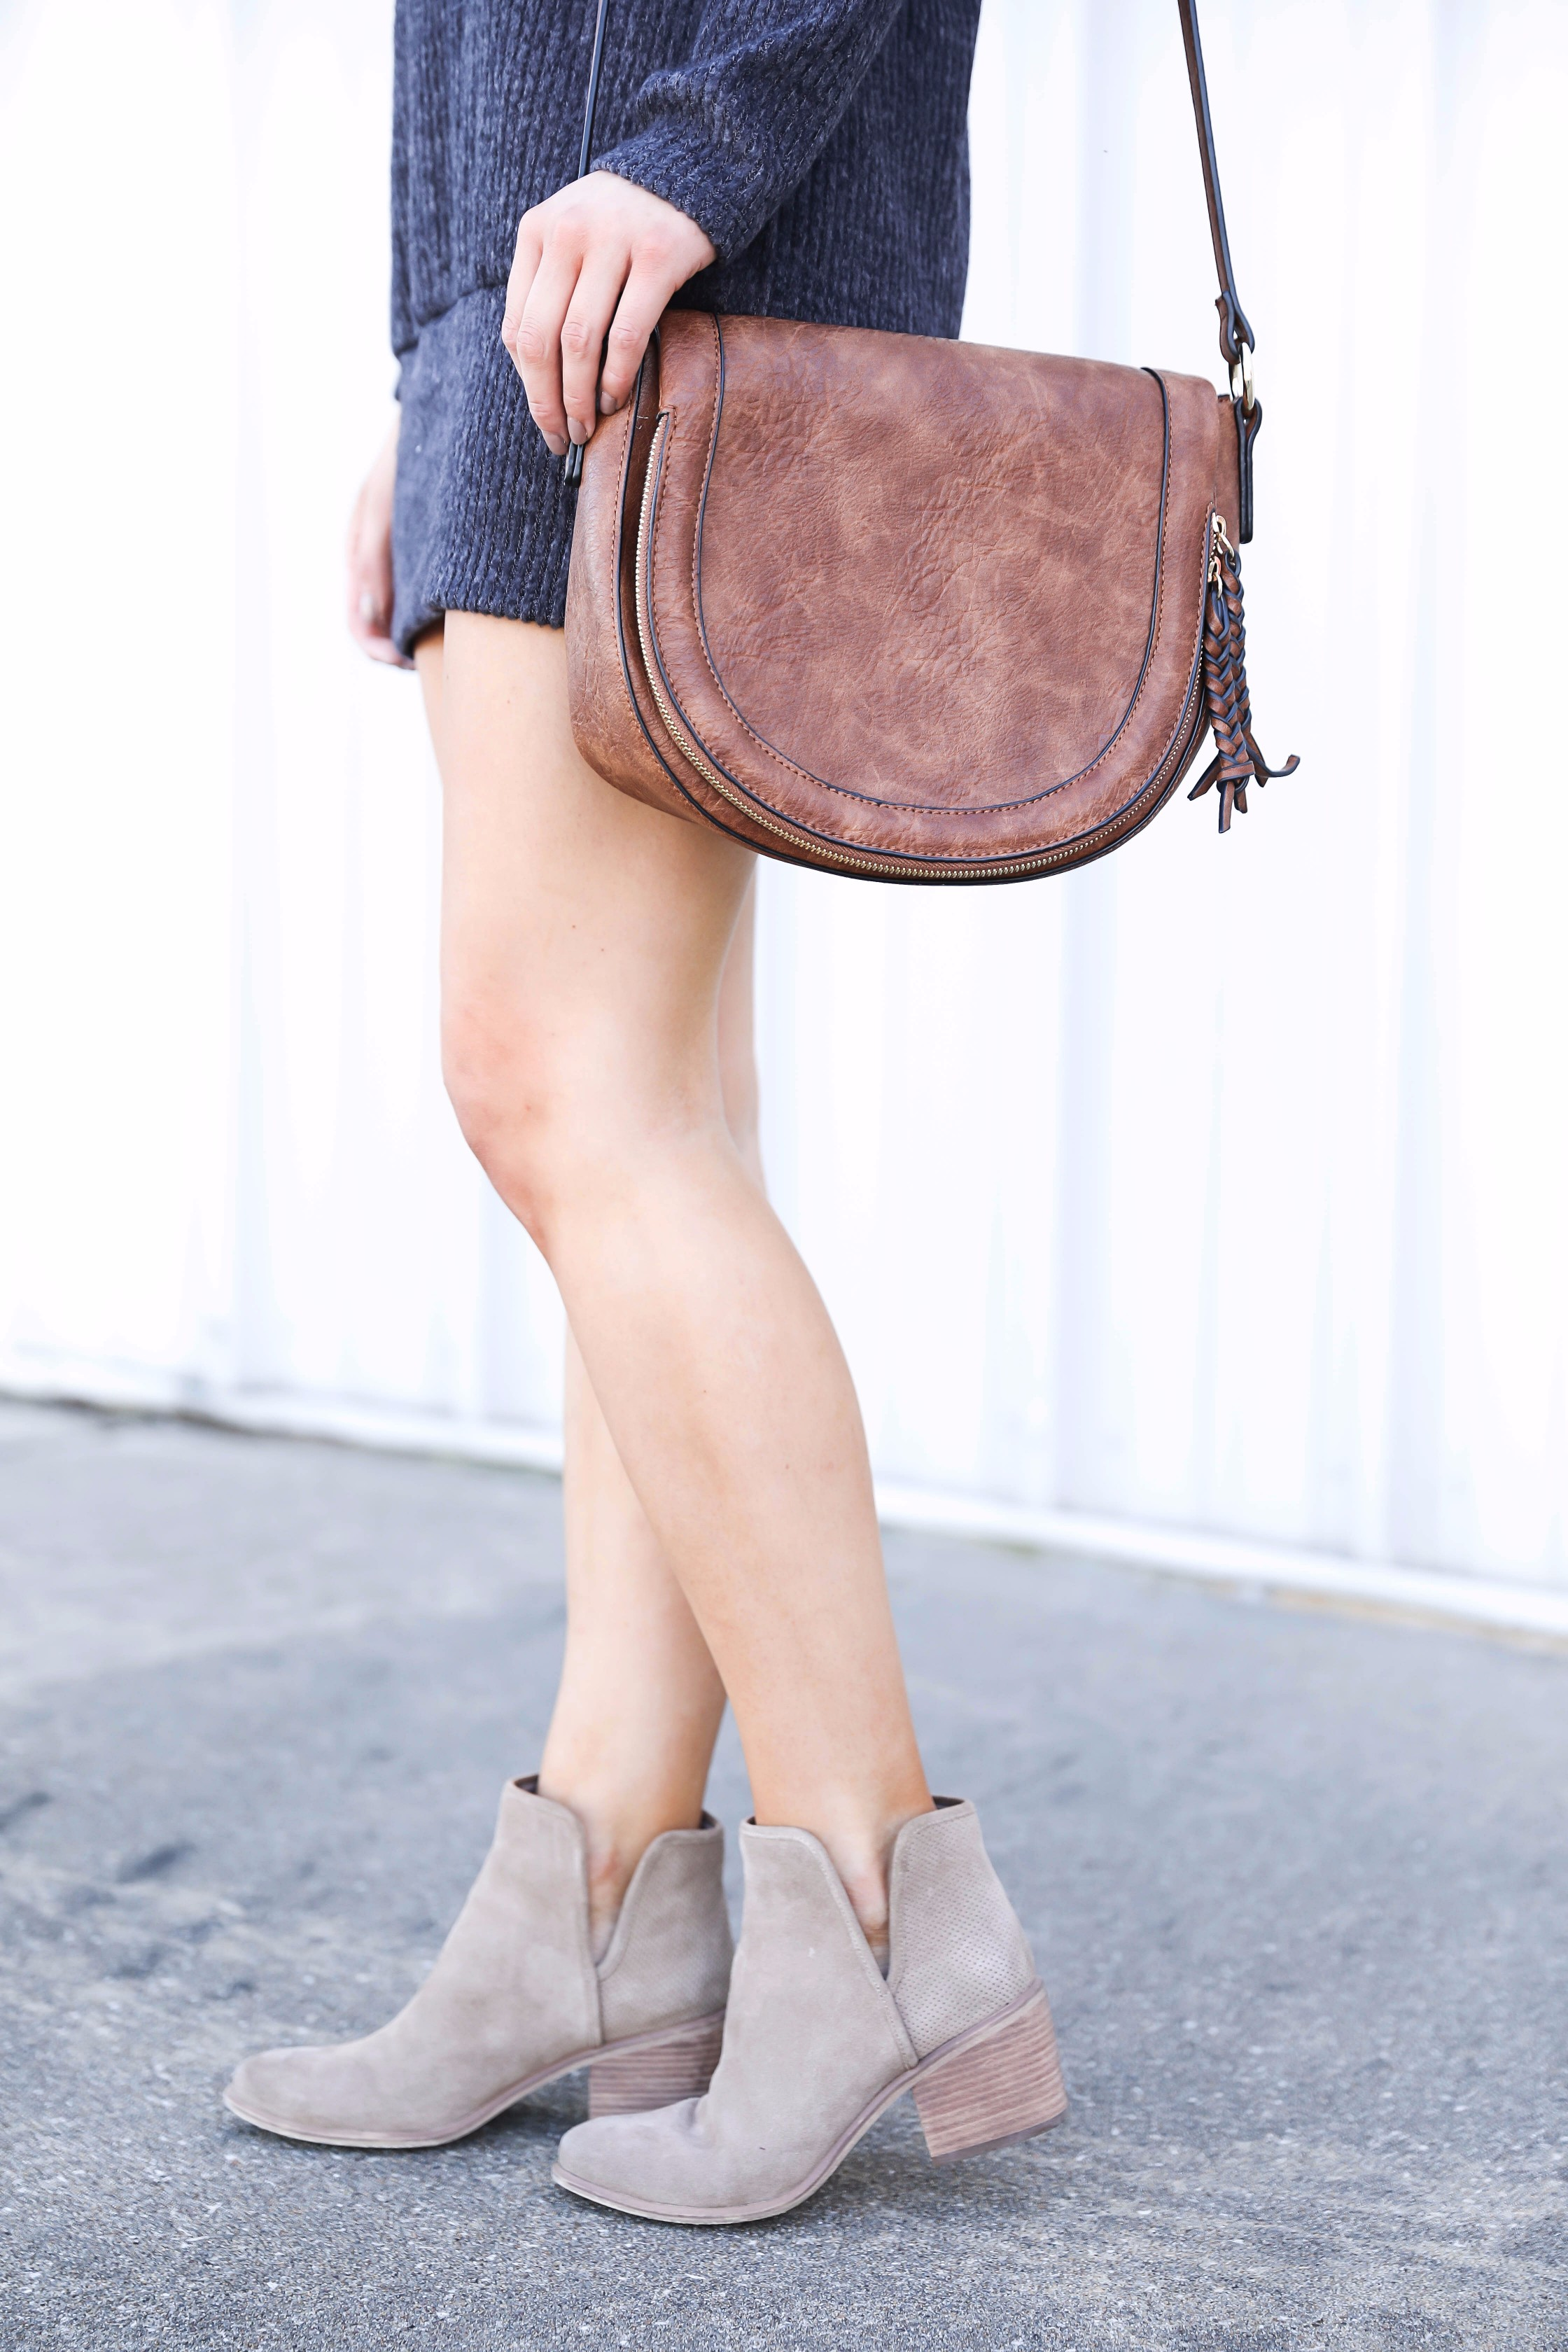 Saddle bag and booties! Off the shoulder sweater dress from BooHoo! Seriously the softest sweater ever! Get the details on fashion blog daily dose of charm by lauren lindmark